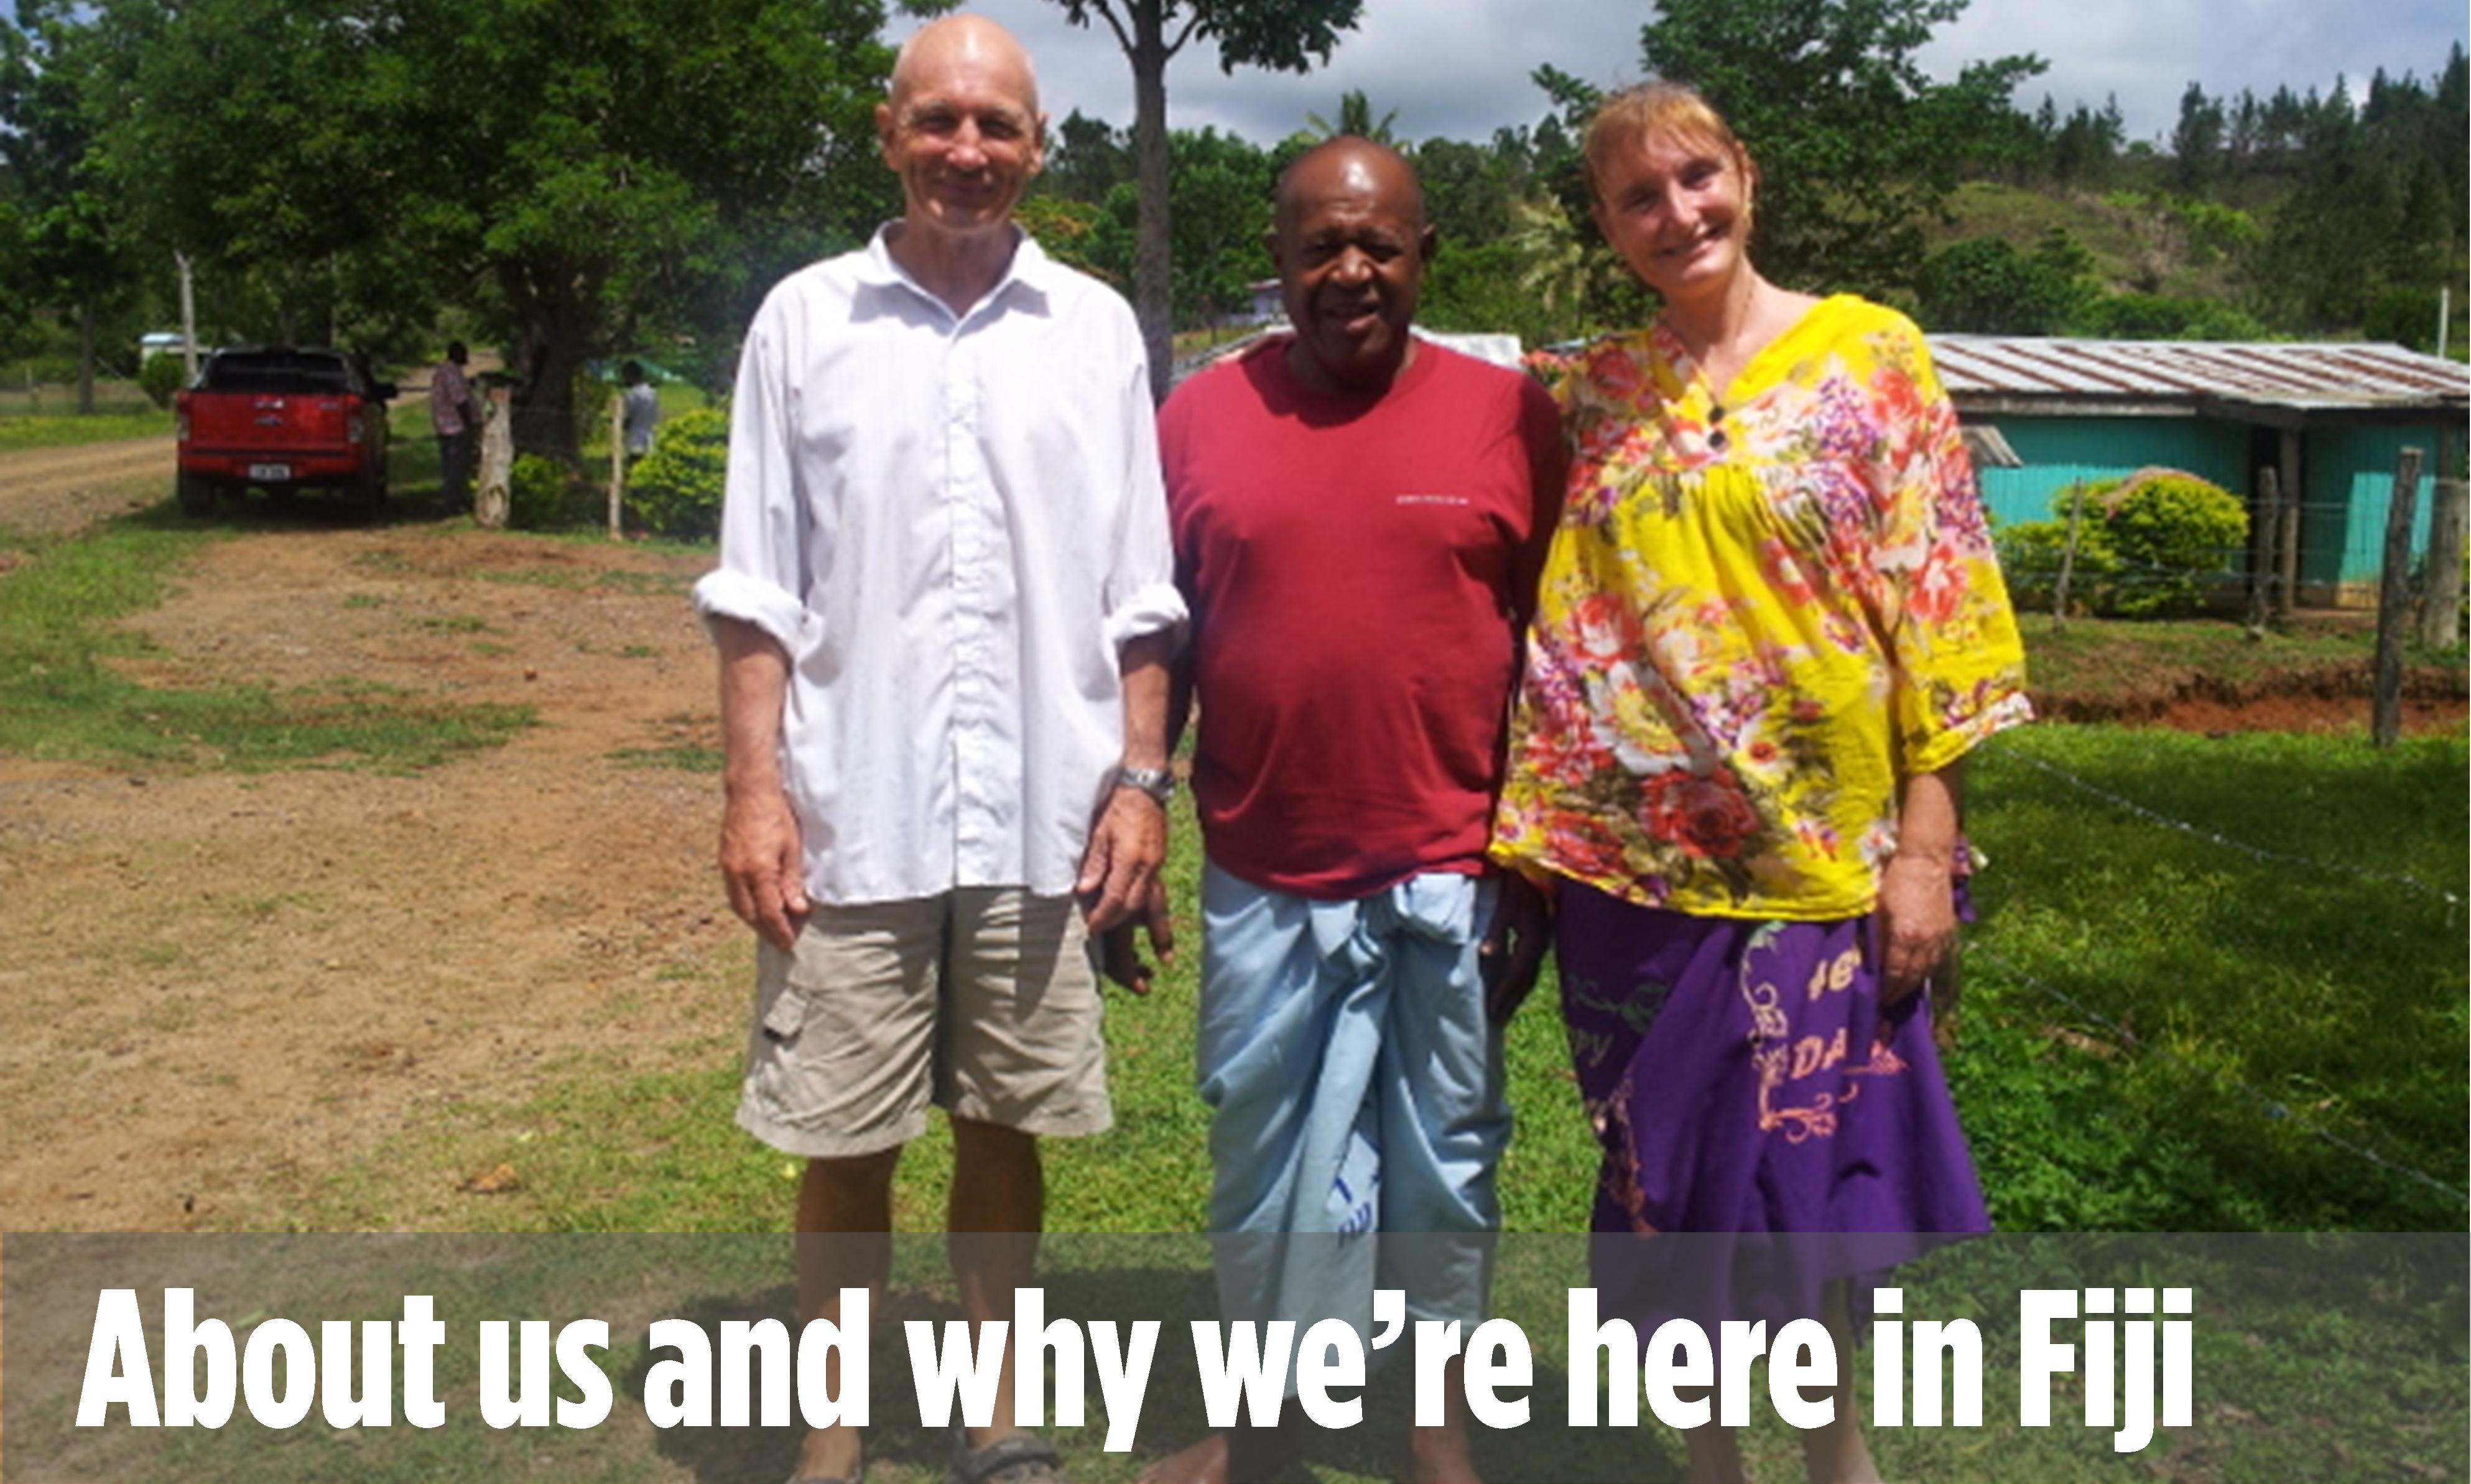 About us in Fiji